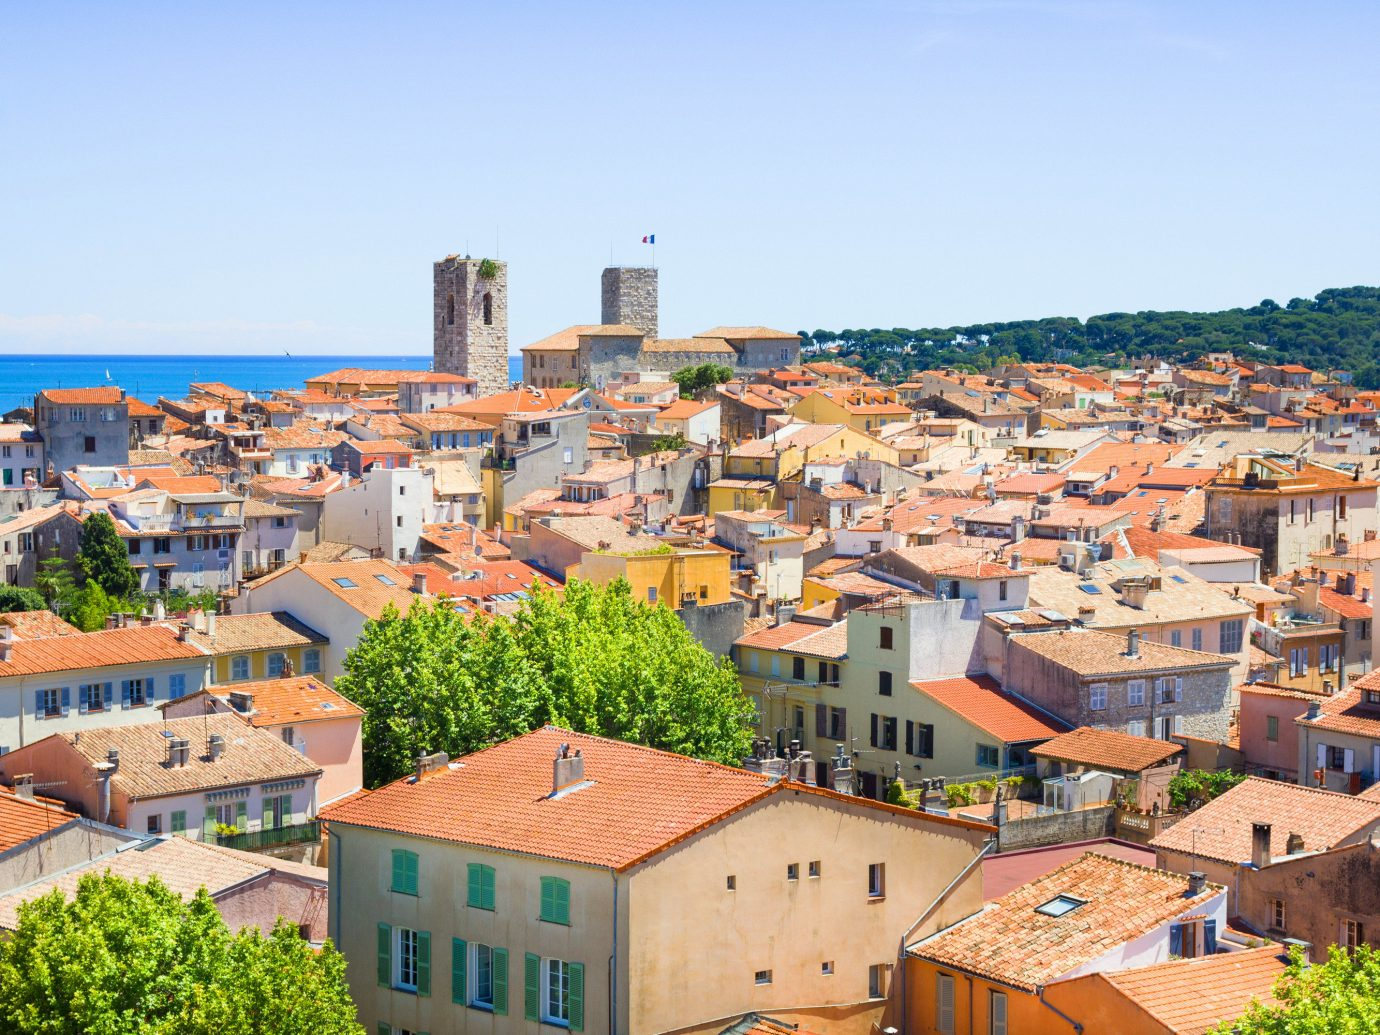 Antibes Southern France Aerial view of village